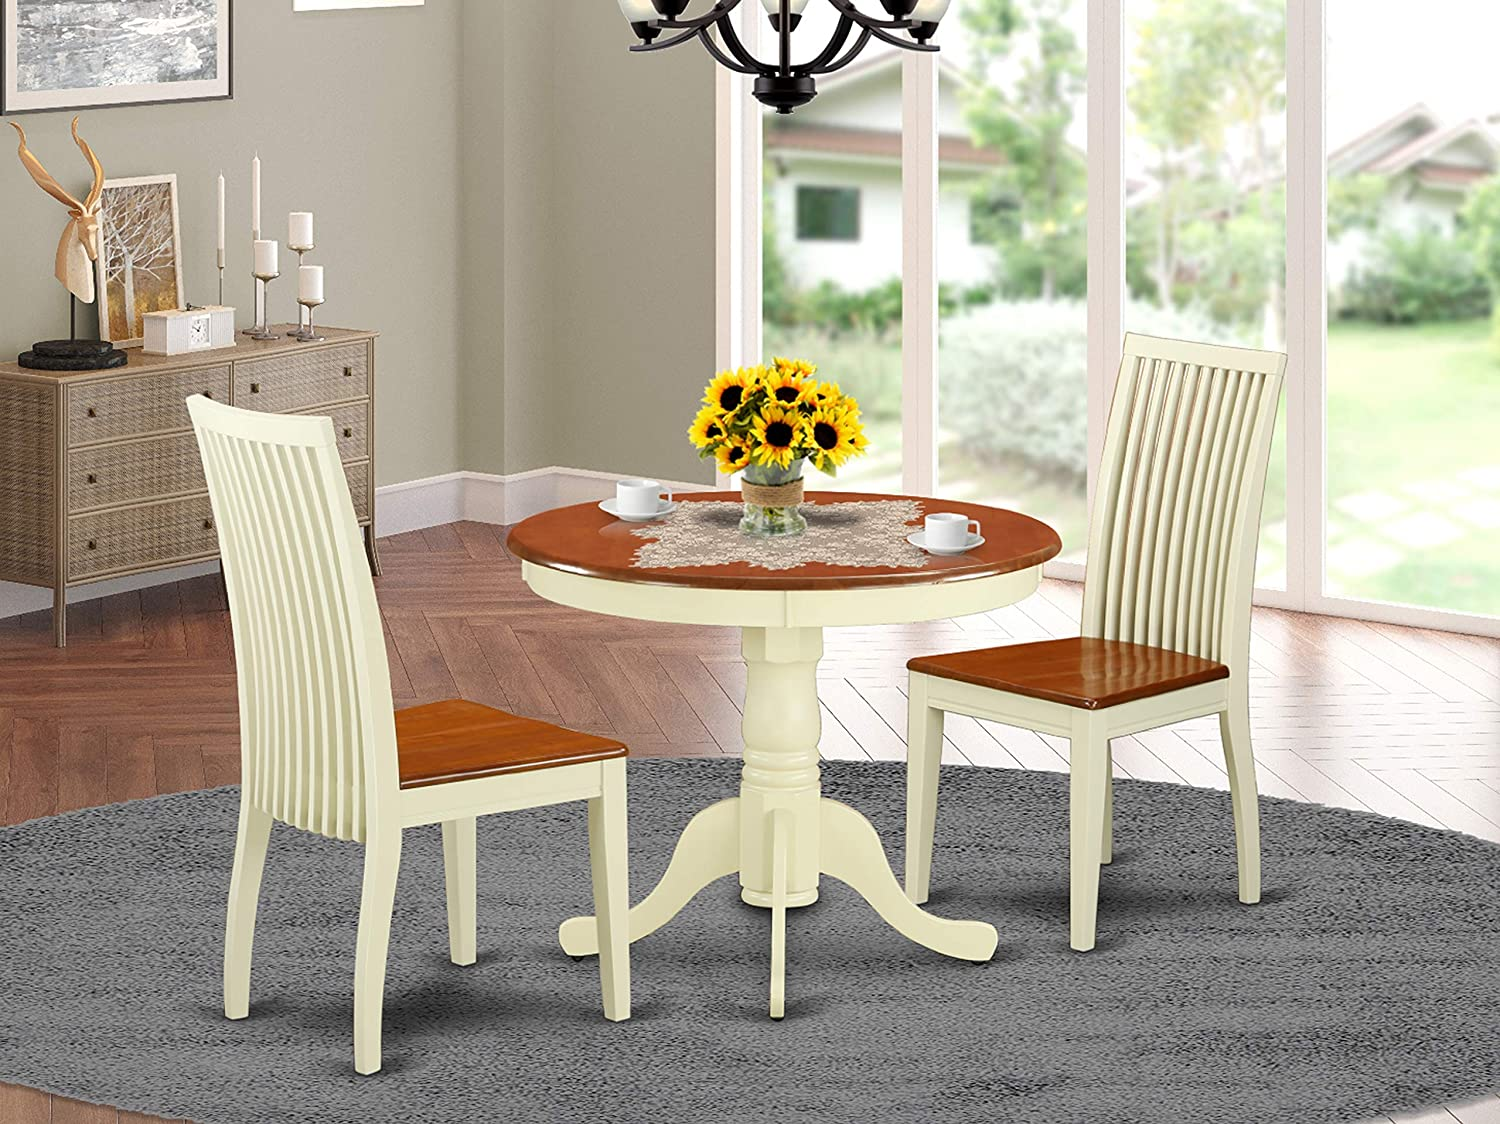 East West Furniture Dinette Set- 2 Fantastic chairs for dining room - A Gorgeous round Wooden Dining Table- Wooden Seat and Buttermilk Wood Kitchen Table